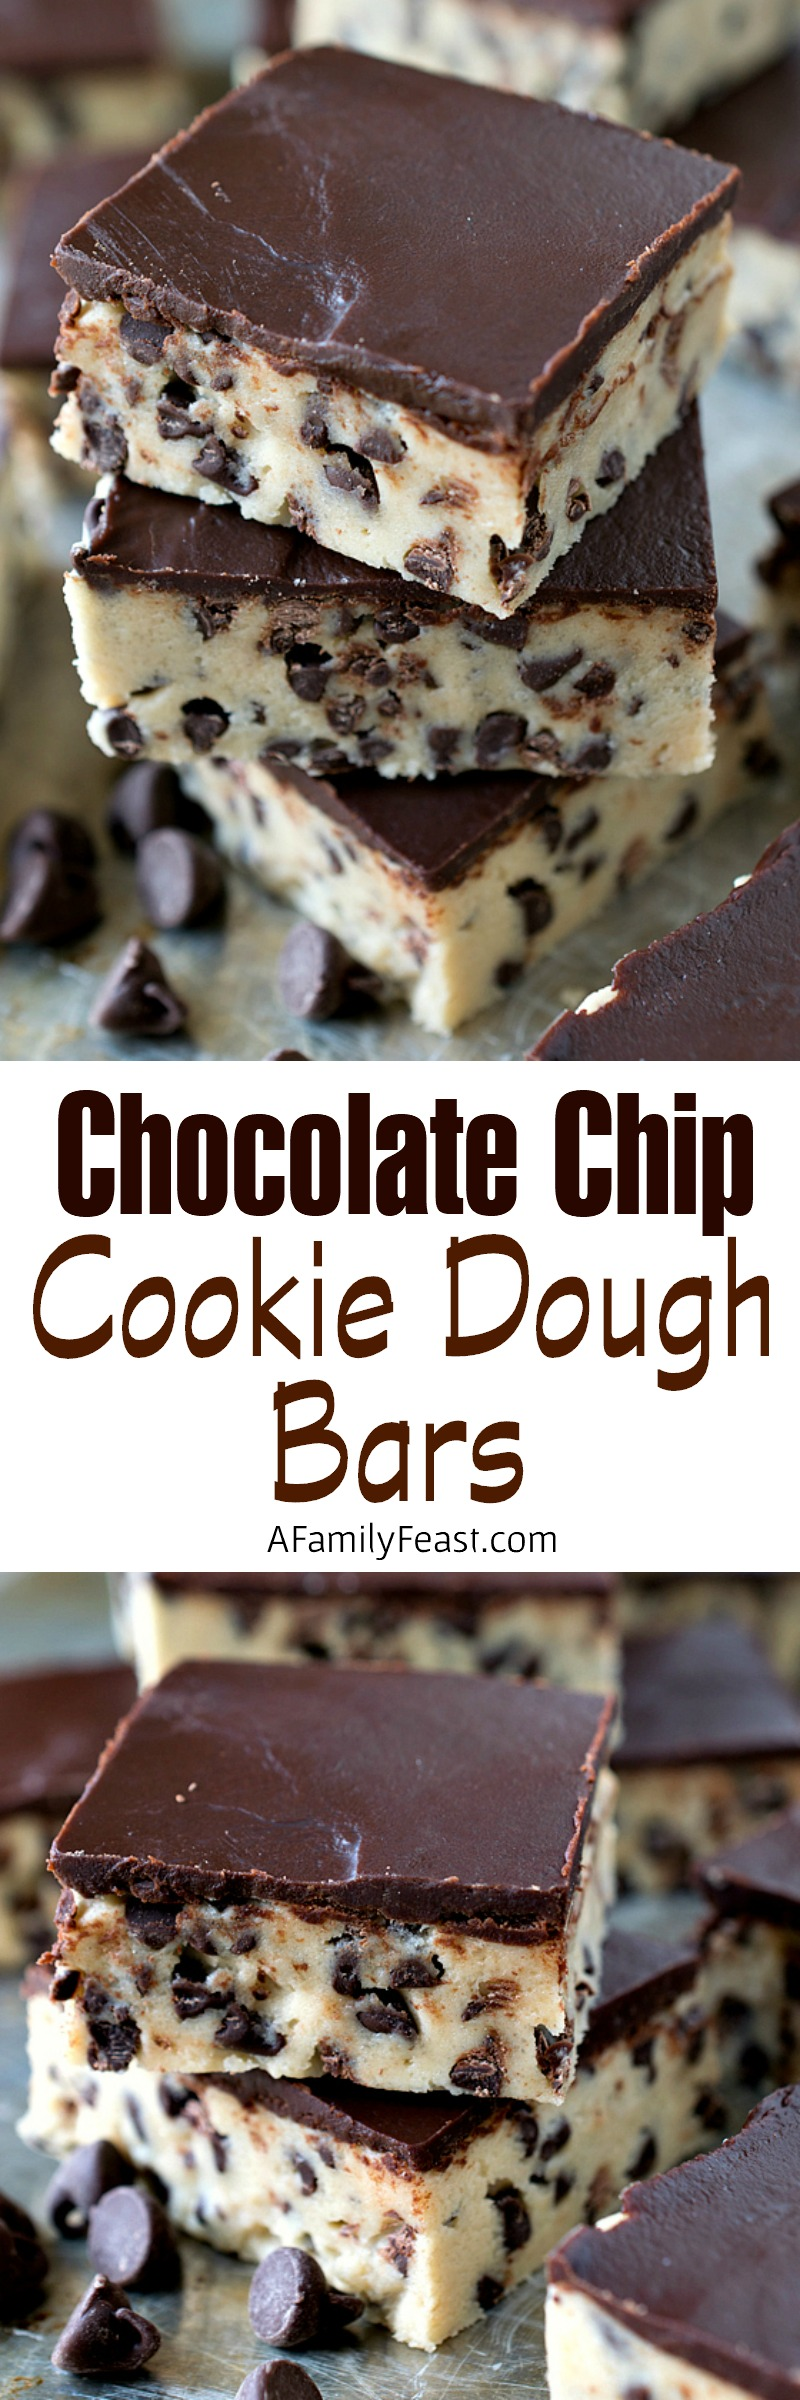 Chocolate Chip Cookie Dough Bars - Simple to make, egg-free and incredibly decadent! Kids and adults will love this recipe.